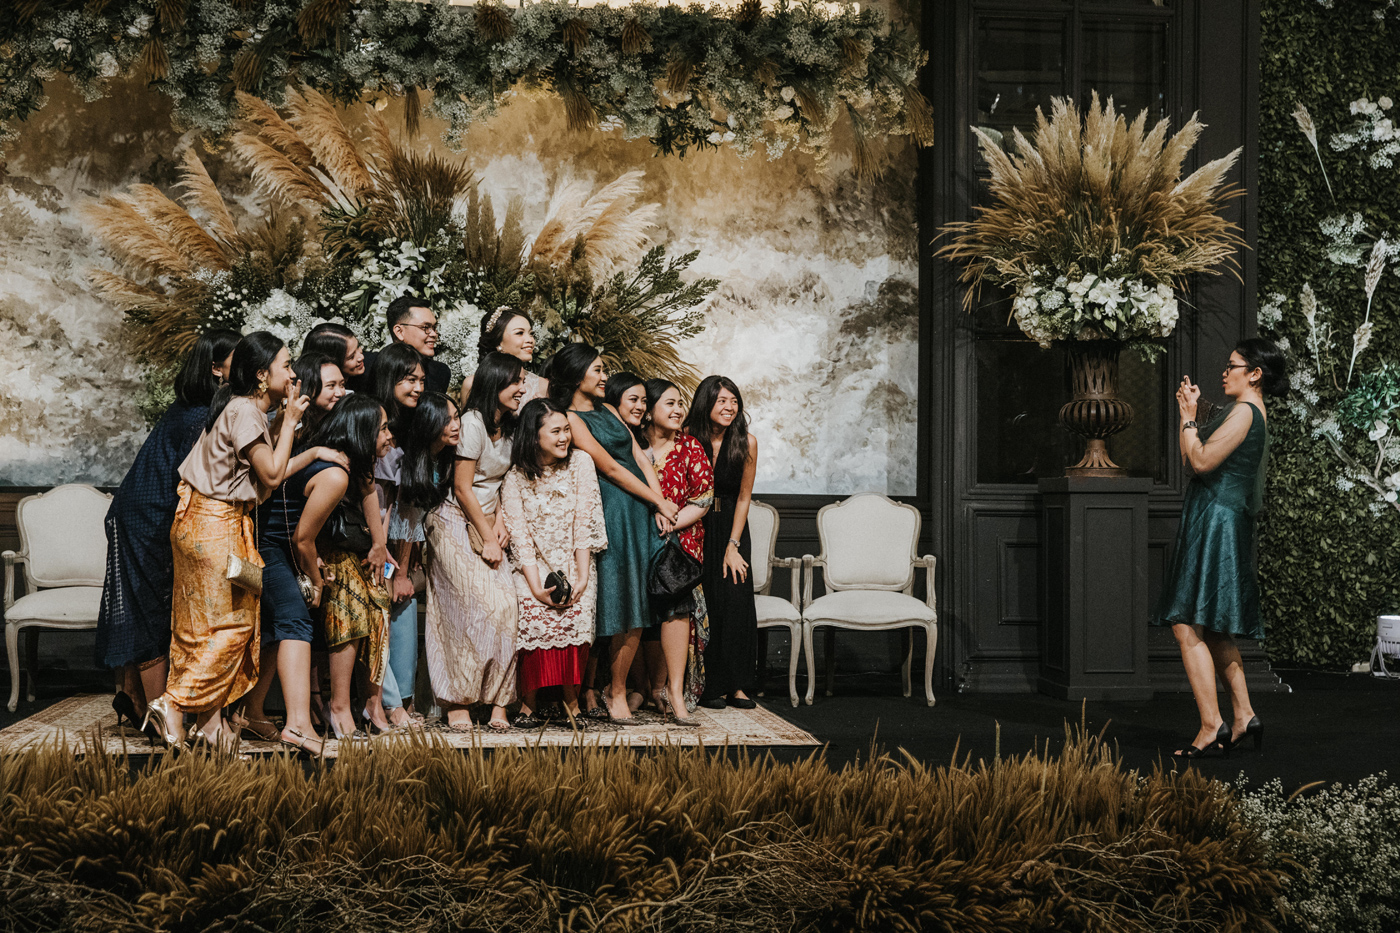 four season wedding asseta james iluminen bali photography destination photographer adat jawa